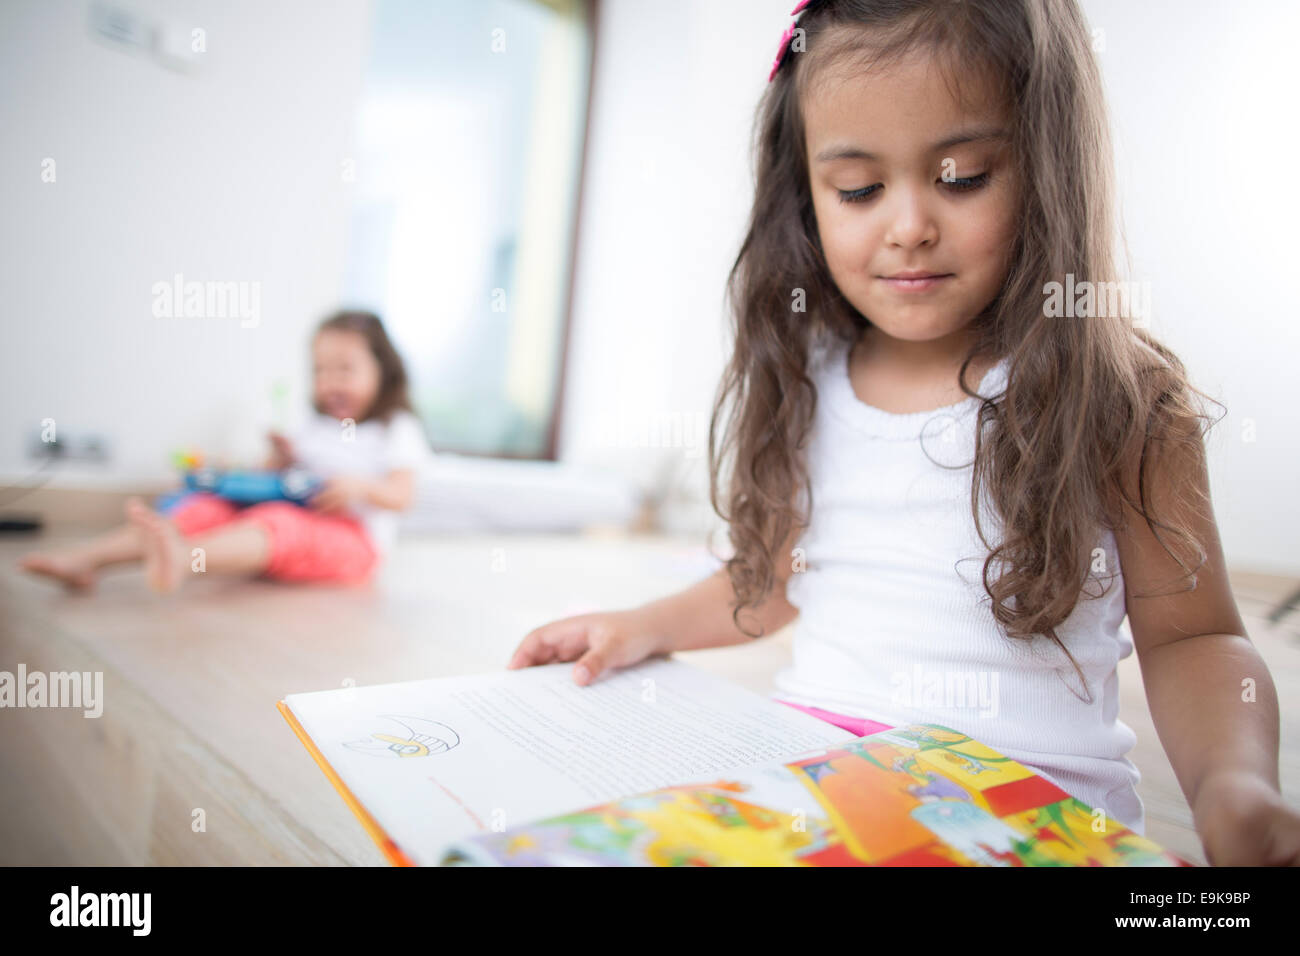 Cute girl reading book with sister in background at home - Stock Image